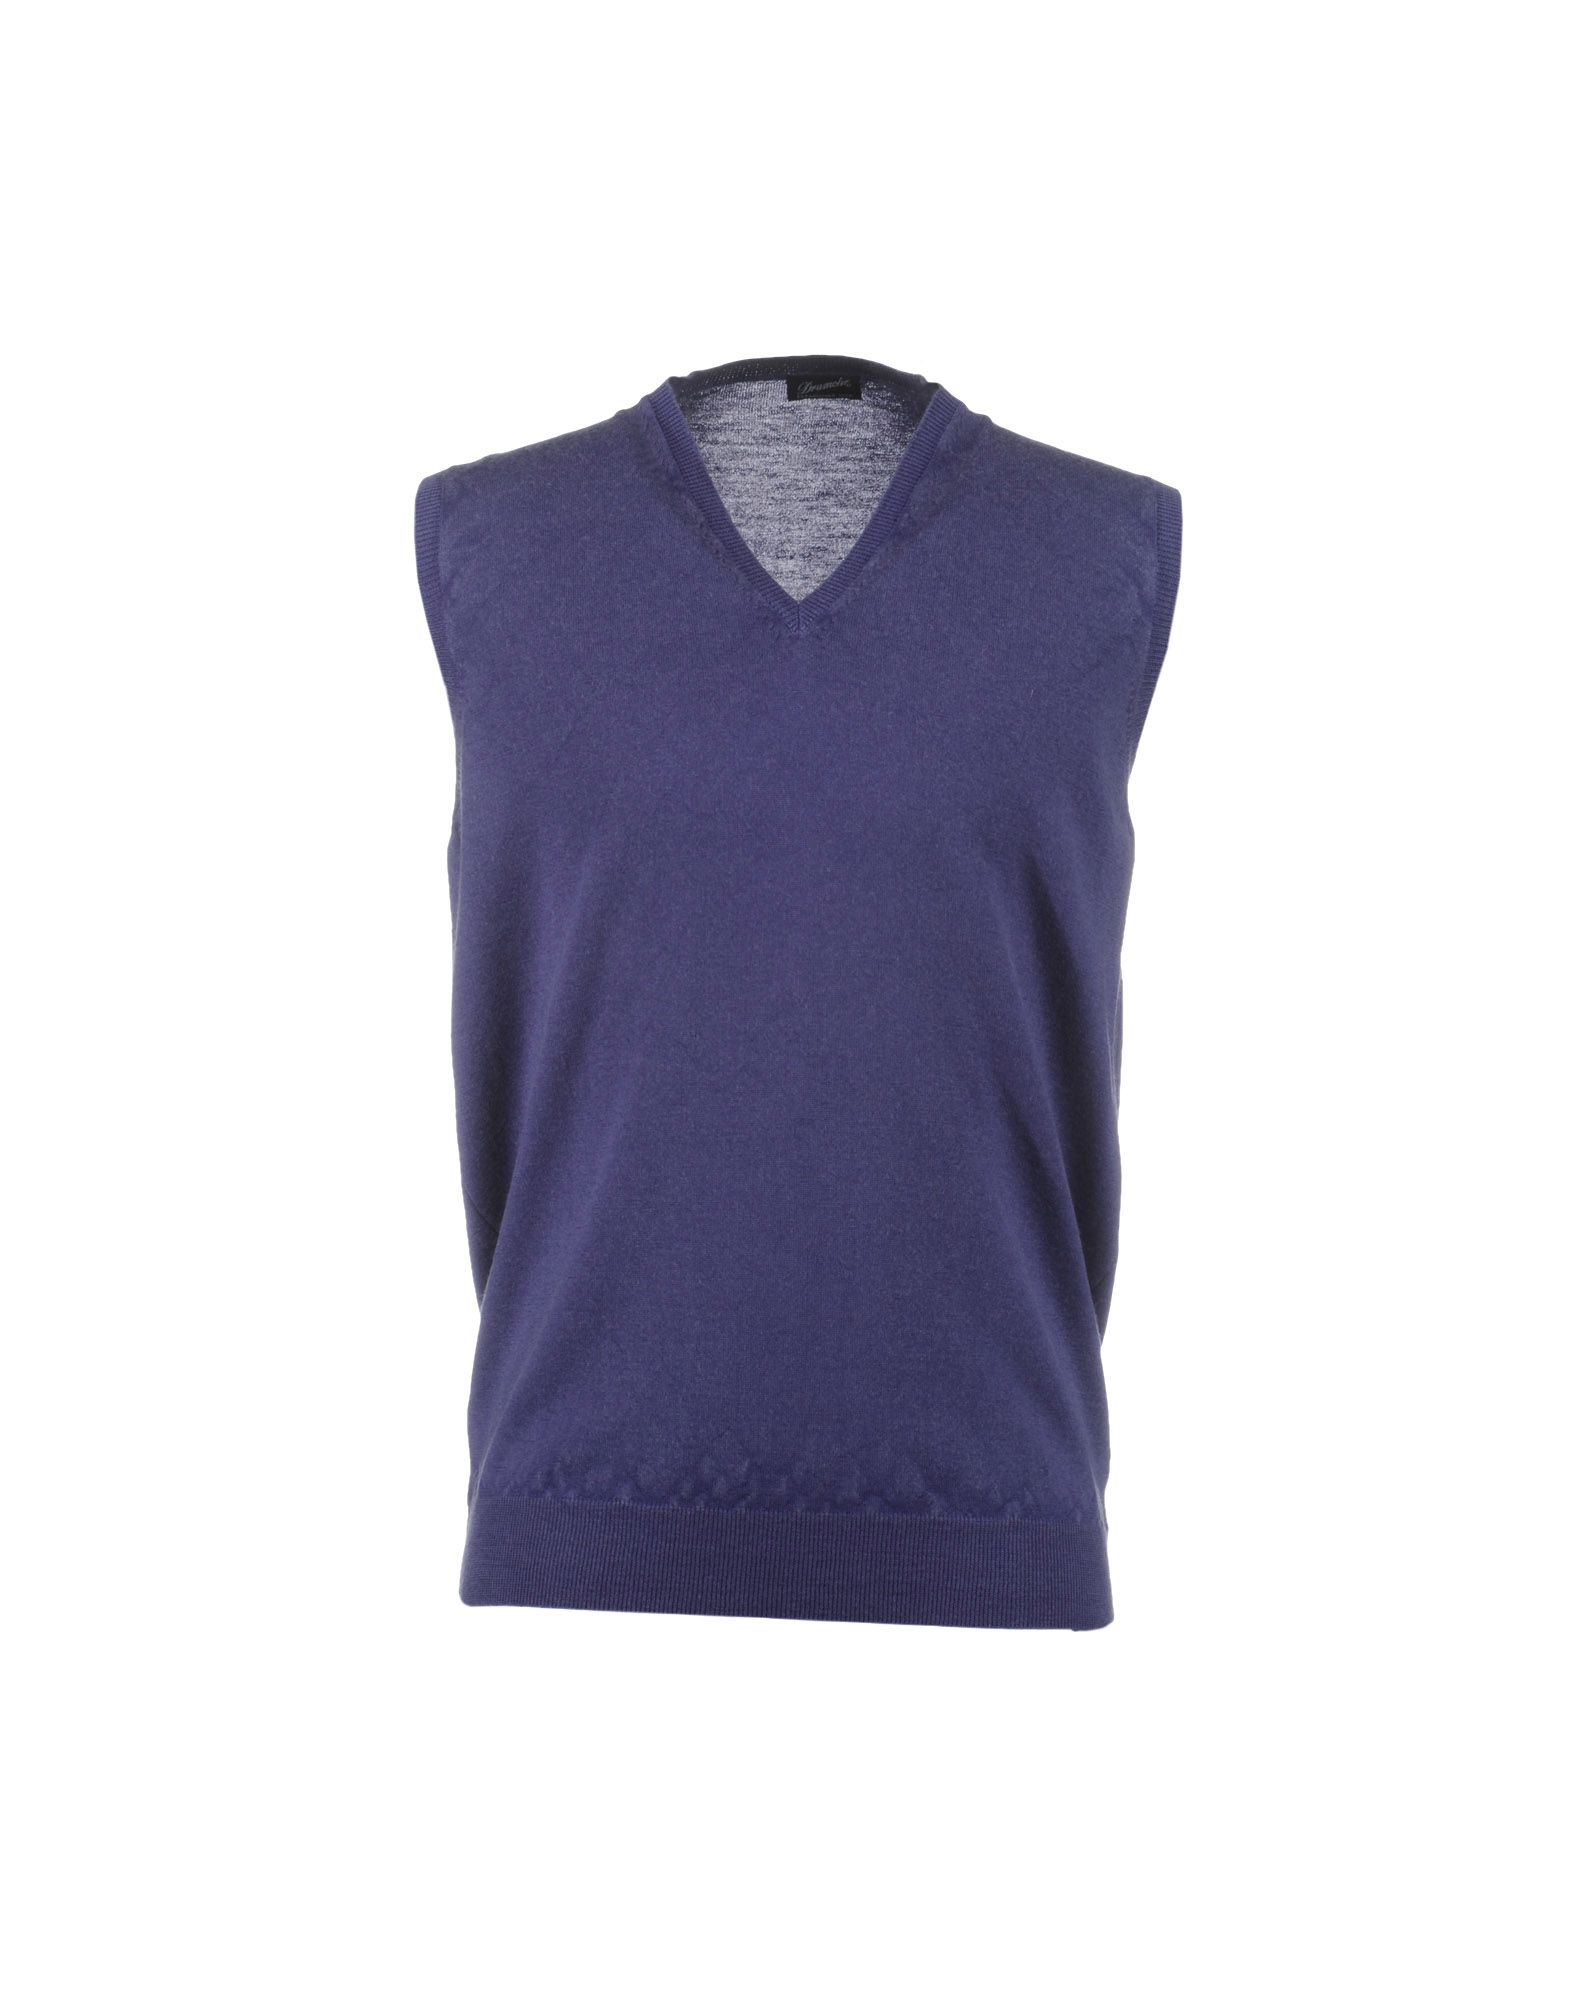 mens purple sweater vest - 28 images - vancl classic solid sweater ...